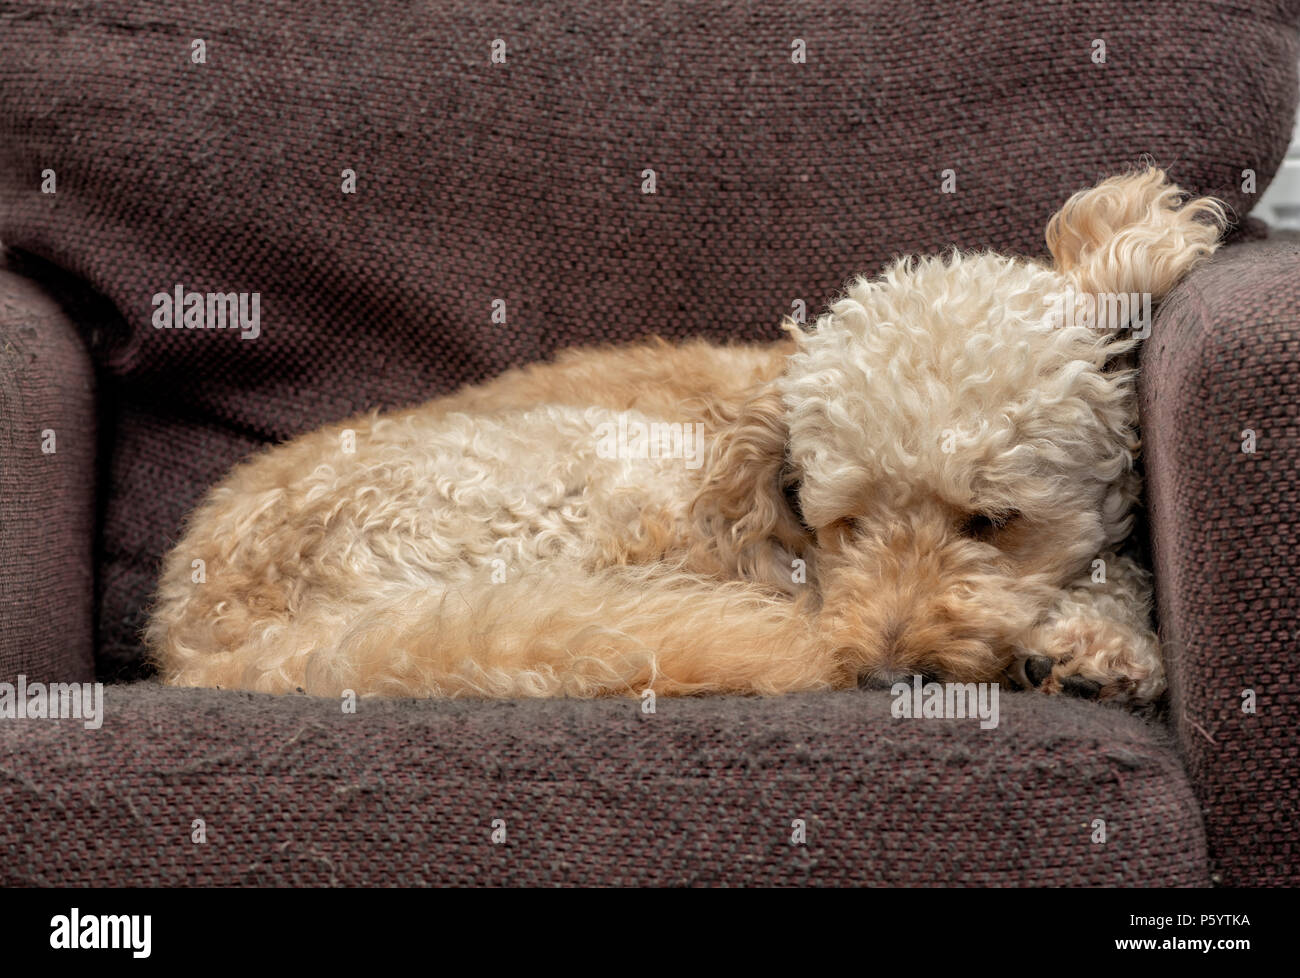 Labradoodle curled up asleep on an armchair - Stock Image